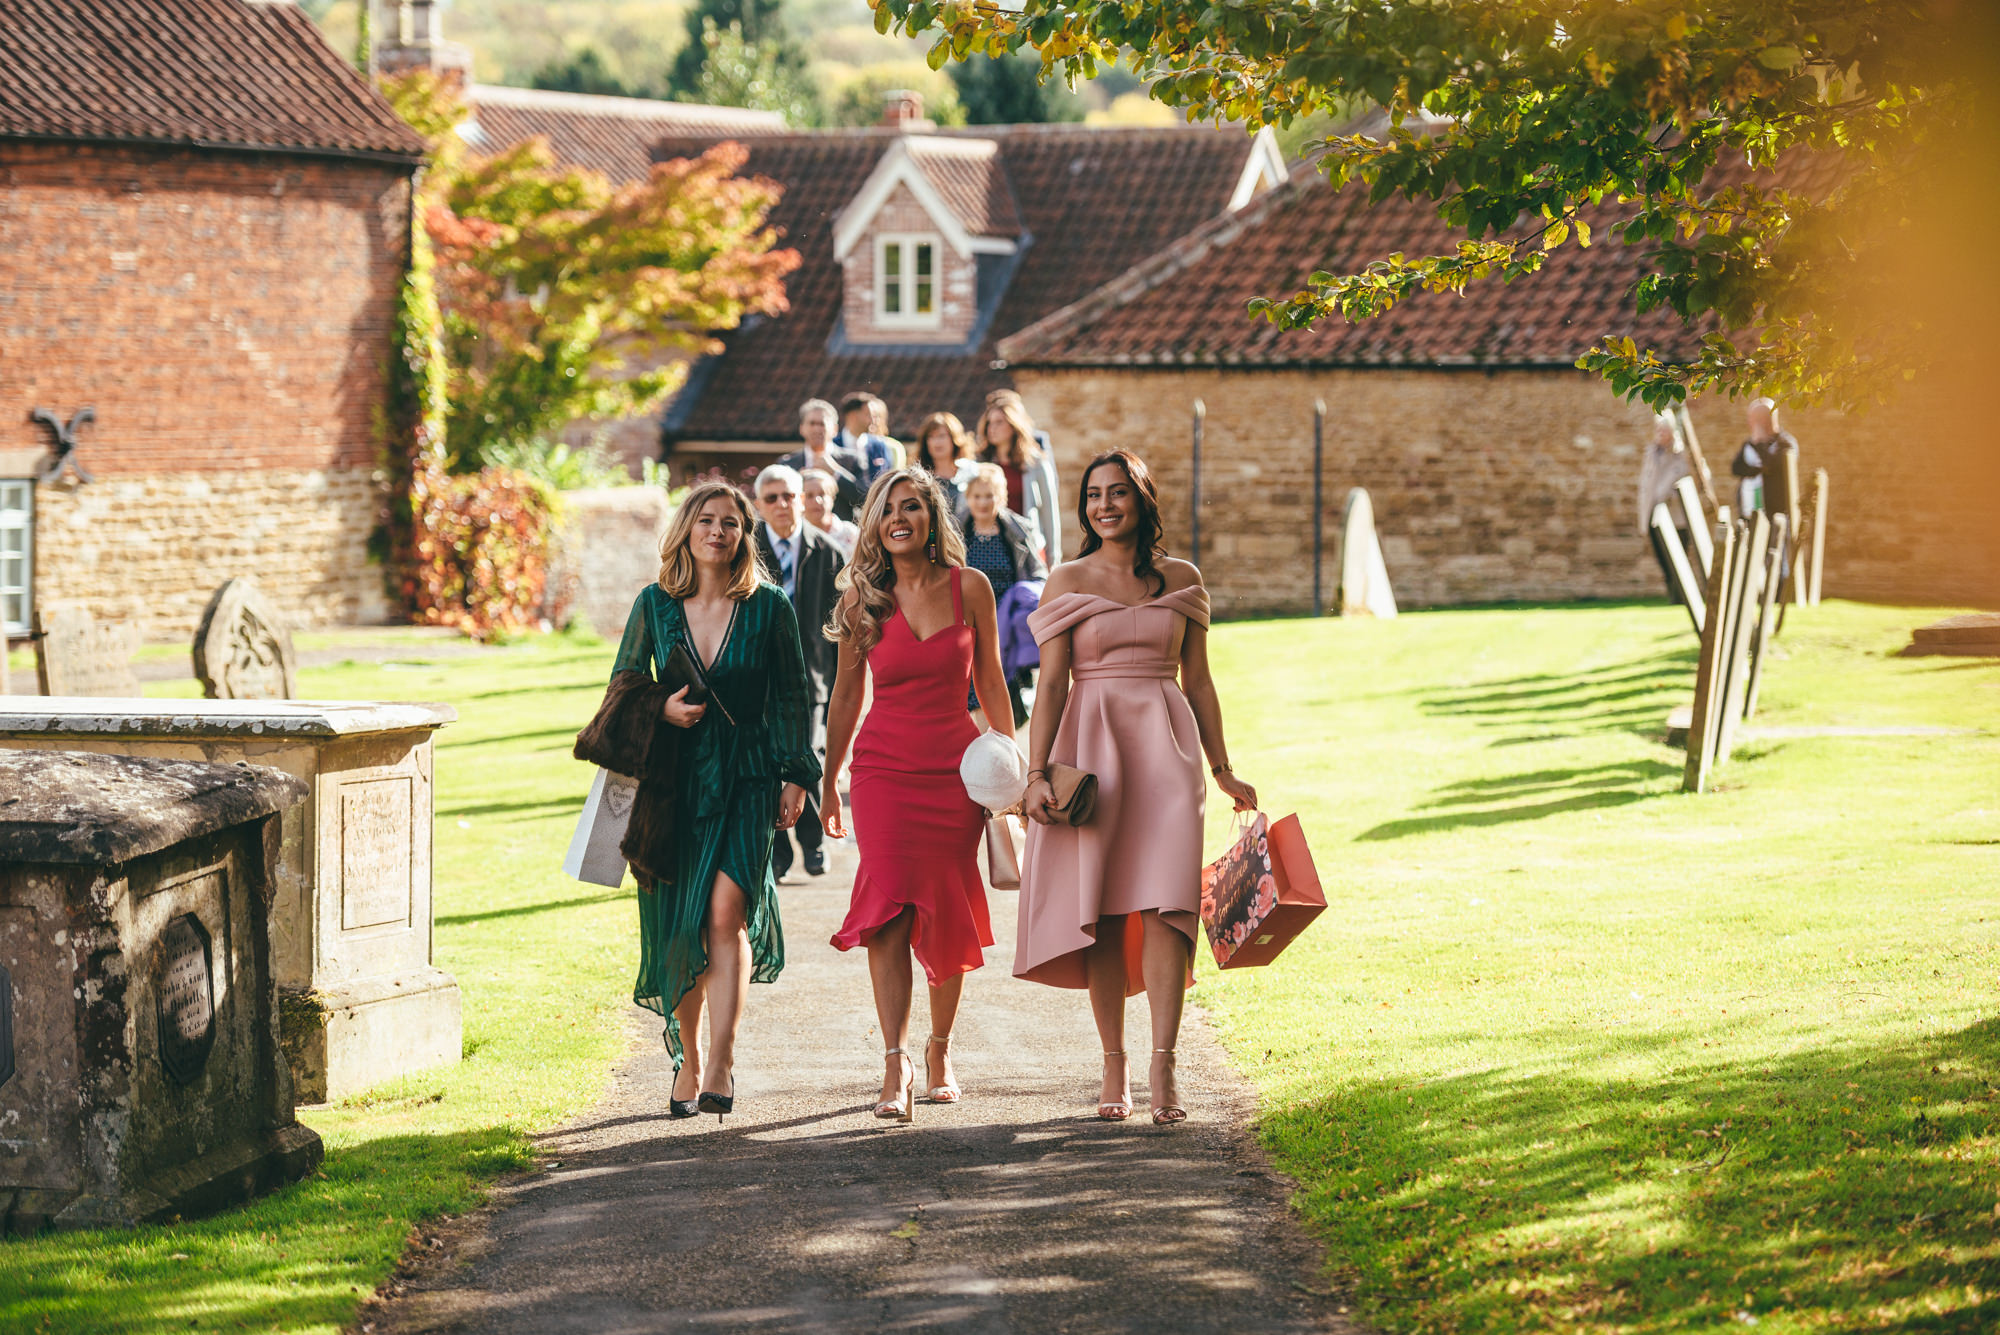 female wedding guests arrive at church